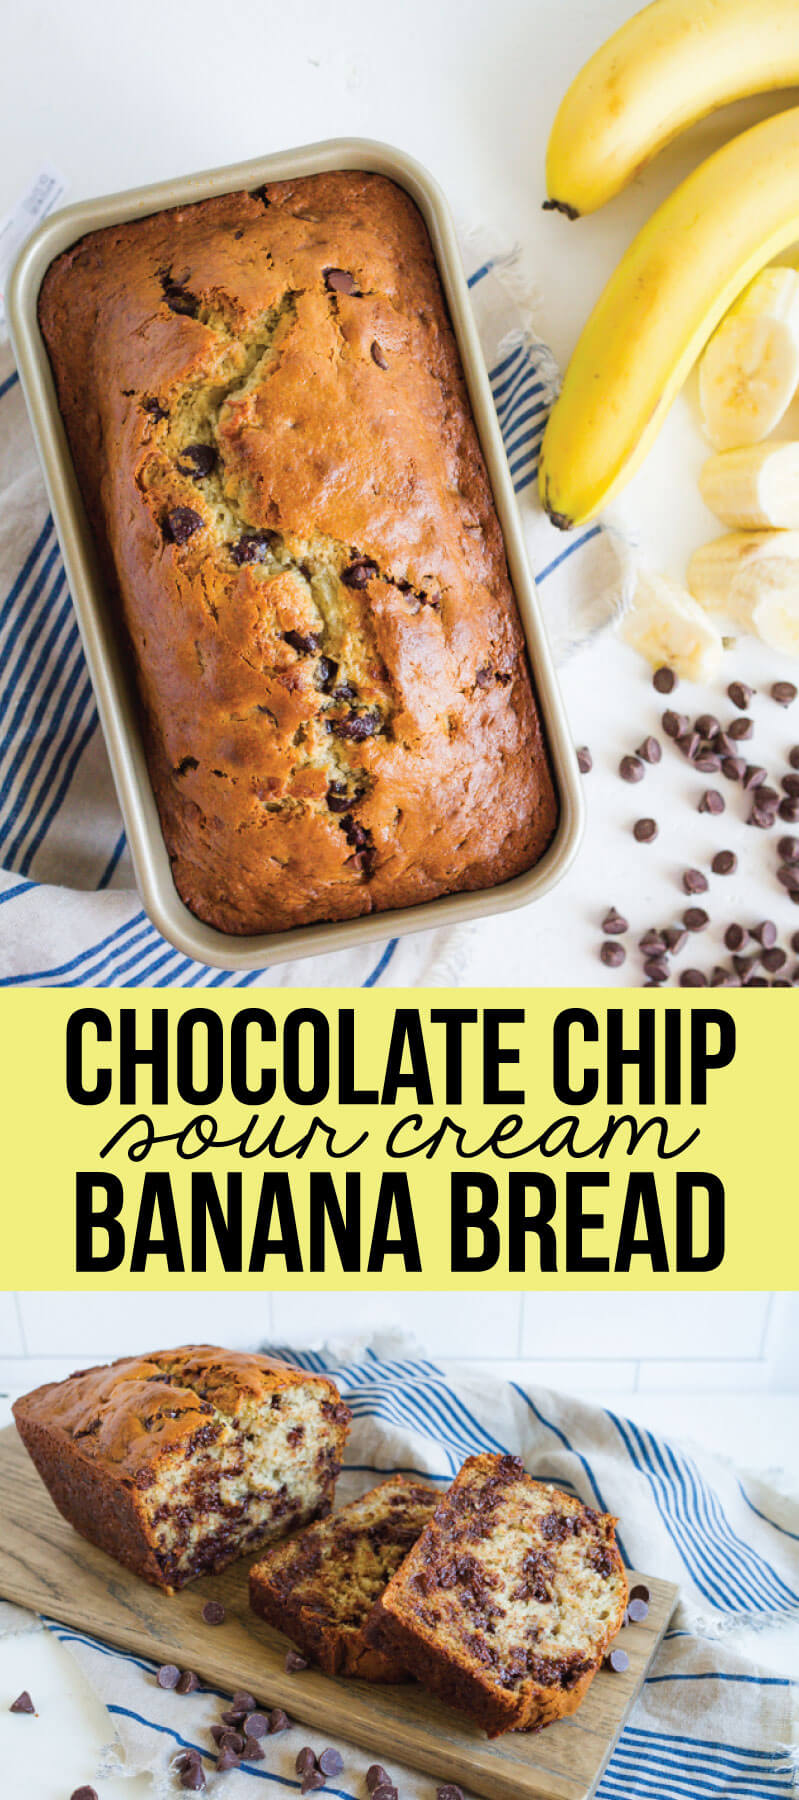 Chocolate Chip Sour Cream Banana Bread - with this secret ingredient, you'll want to make this banana bread recipe again and again! from www.thirtyhandmadedays.com